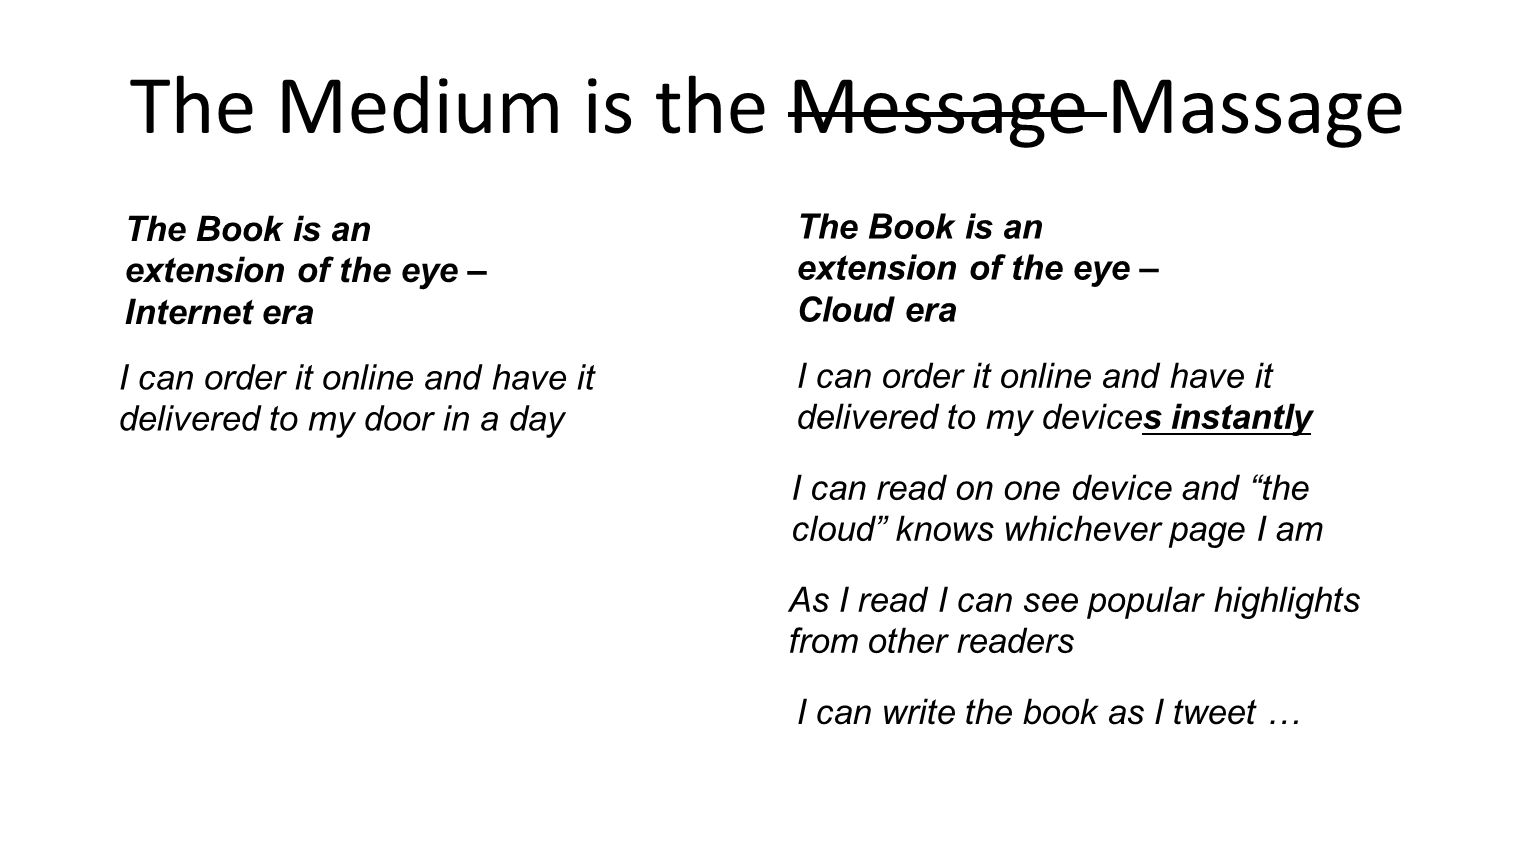 The Medium is the Message Massage I can order it online and have it delivered to my devices instantly The Book is an extension of the eye – Internet era The Book is an extension of the eye – Cloud era I can order it online and have it delivered to my door in a day I can read on one device and the cloud knows whichever page I am As I read I can see popular highlights from other readers I can write the book as I tweet …